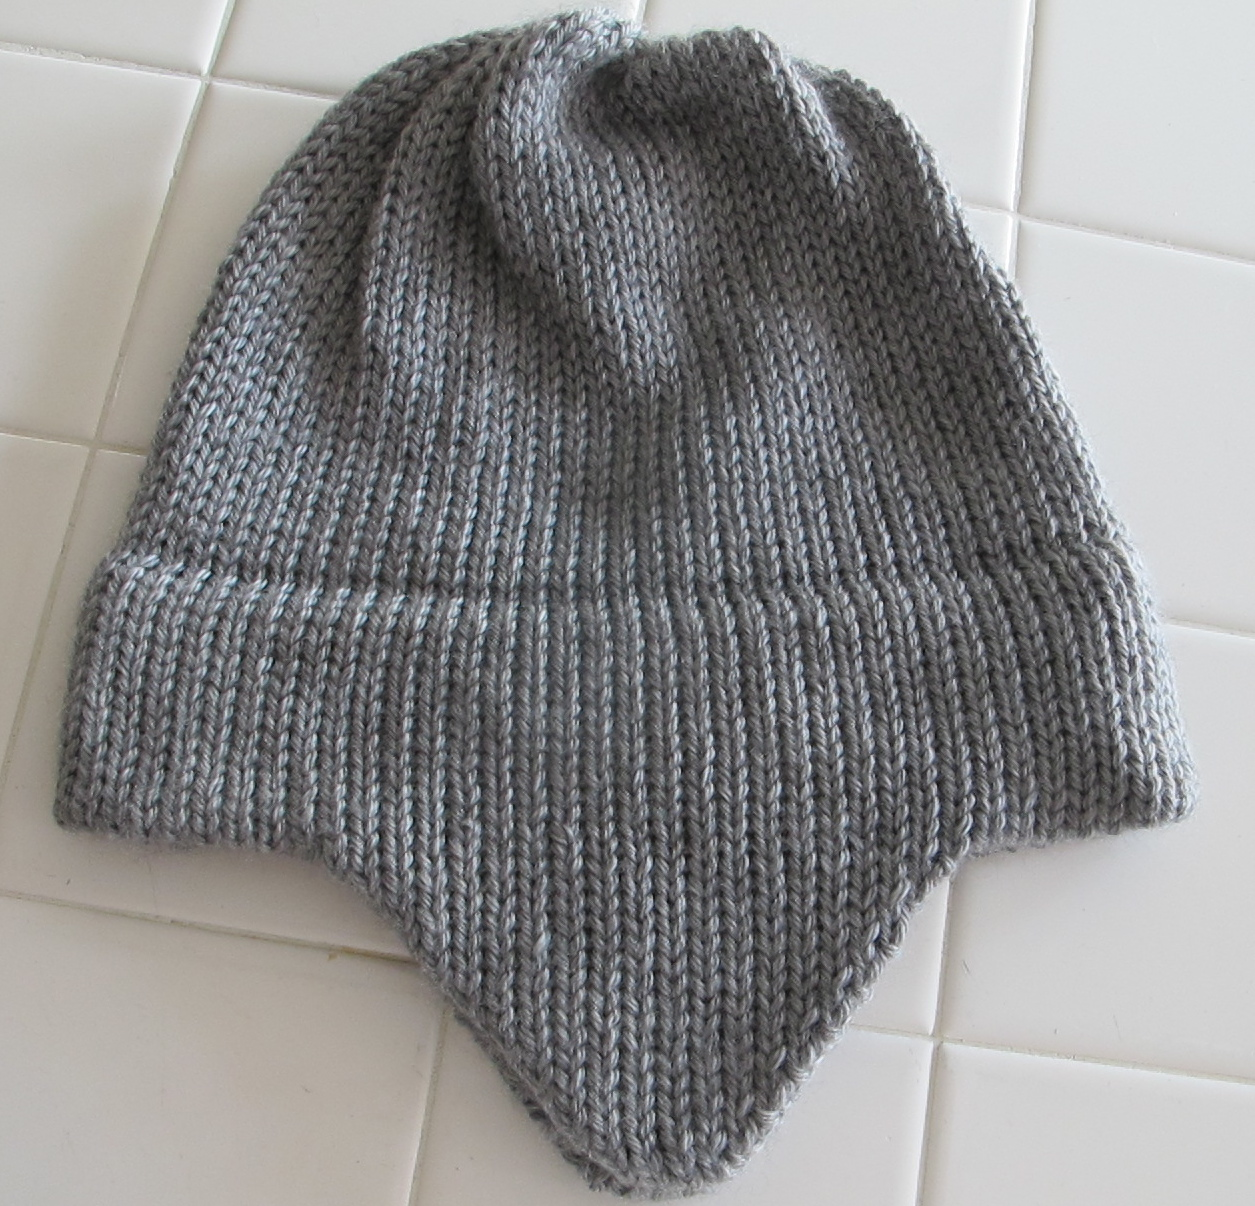 Easy Knitting Pattern Hat With Ear Flaps : TOM MACHINE KNITTING GUY: Ear Flap Hat